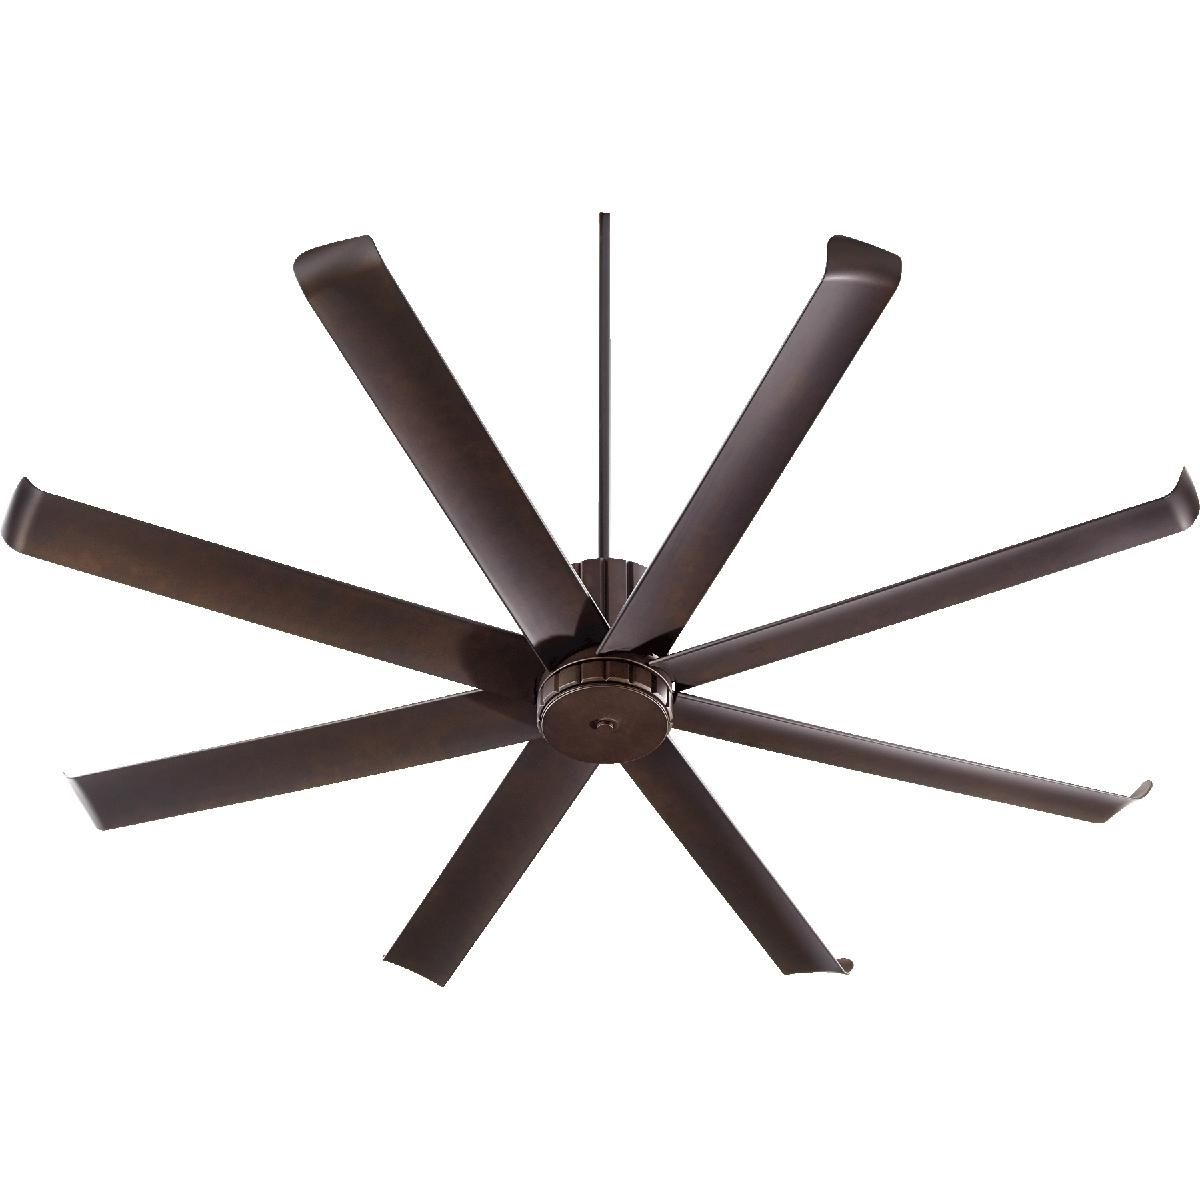 Cabin Ceiling Fans Regarding 72 Predator Bronze Outdoor Ceiling Fans With Light Kit (Gallery 1 of 20)